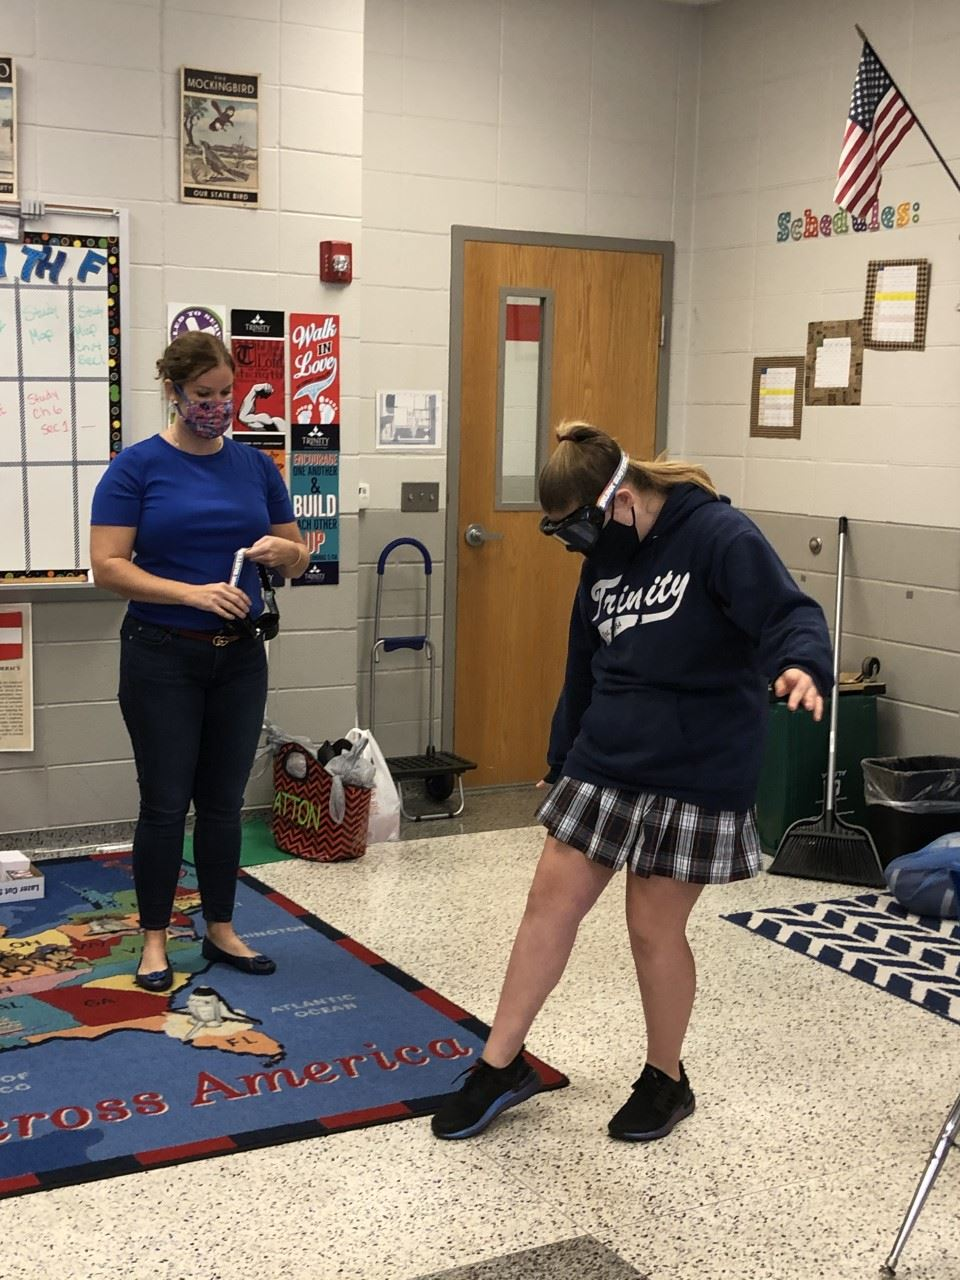 A woman watches a uniformed girl wearing impairment goggles try to walk in a line in a classroom.